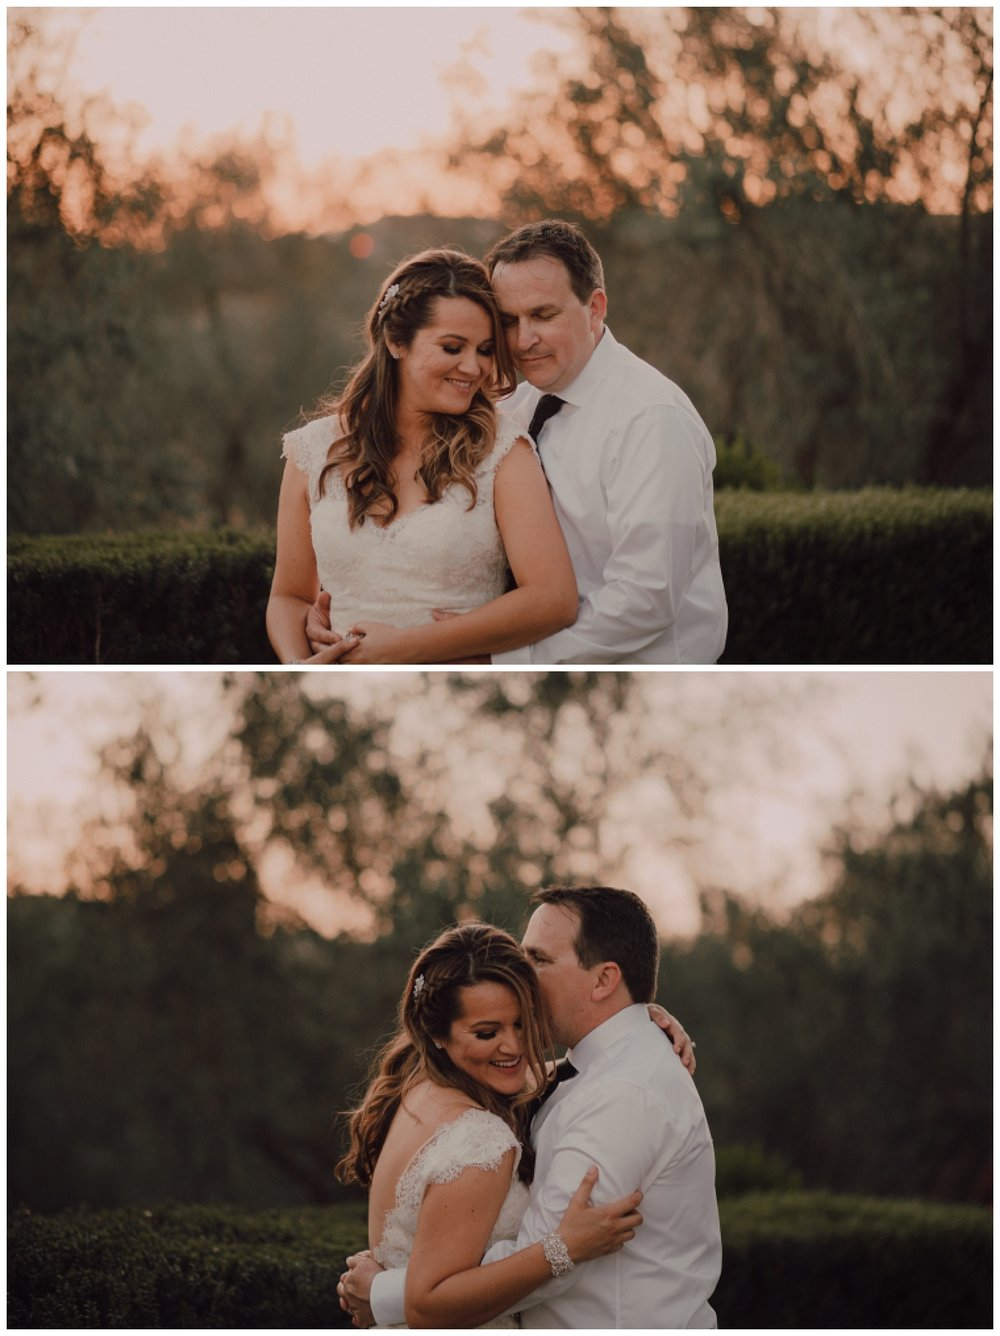 444-180414-ana-jeff-wedding-Sierra-Solis-Photography.jpg